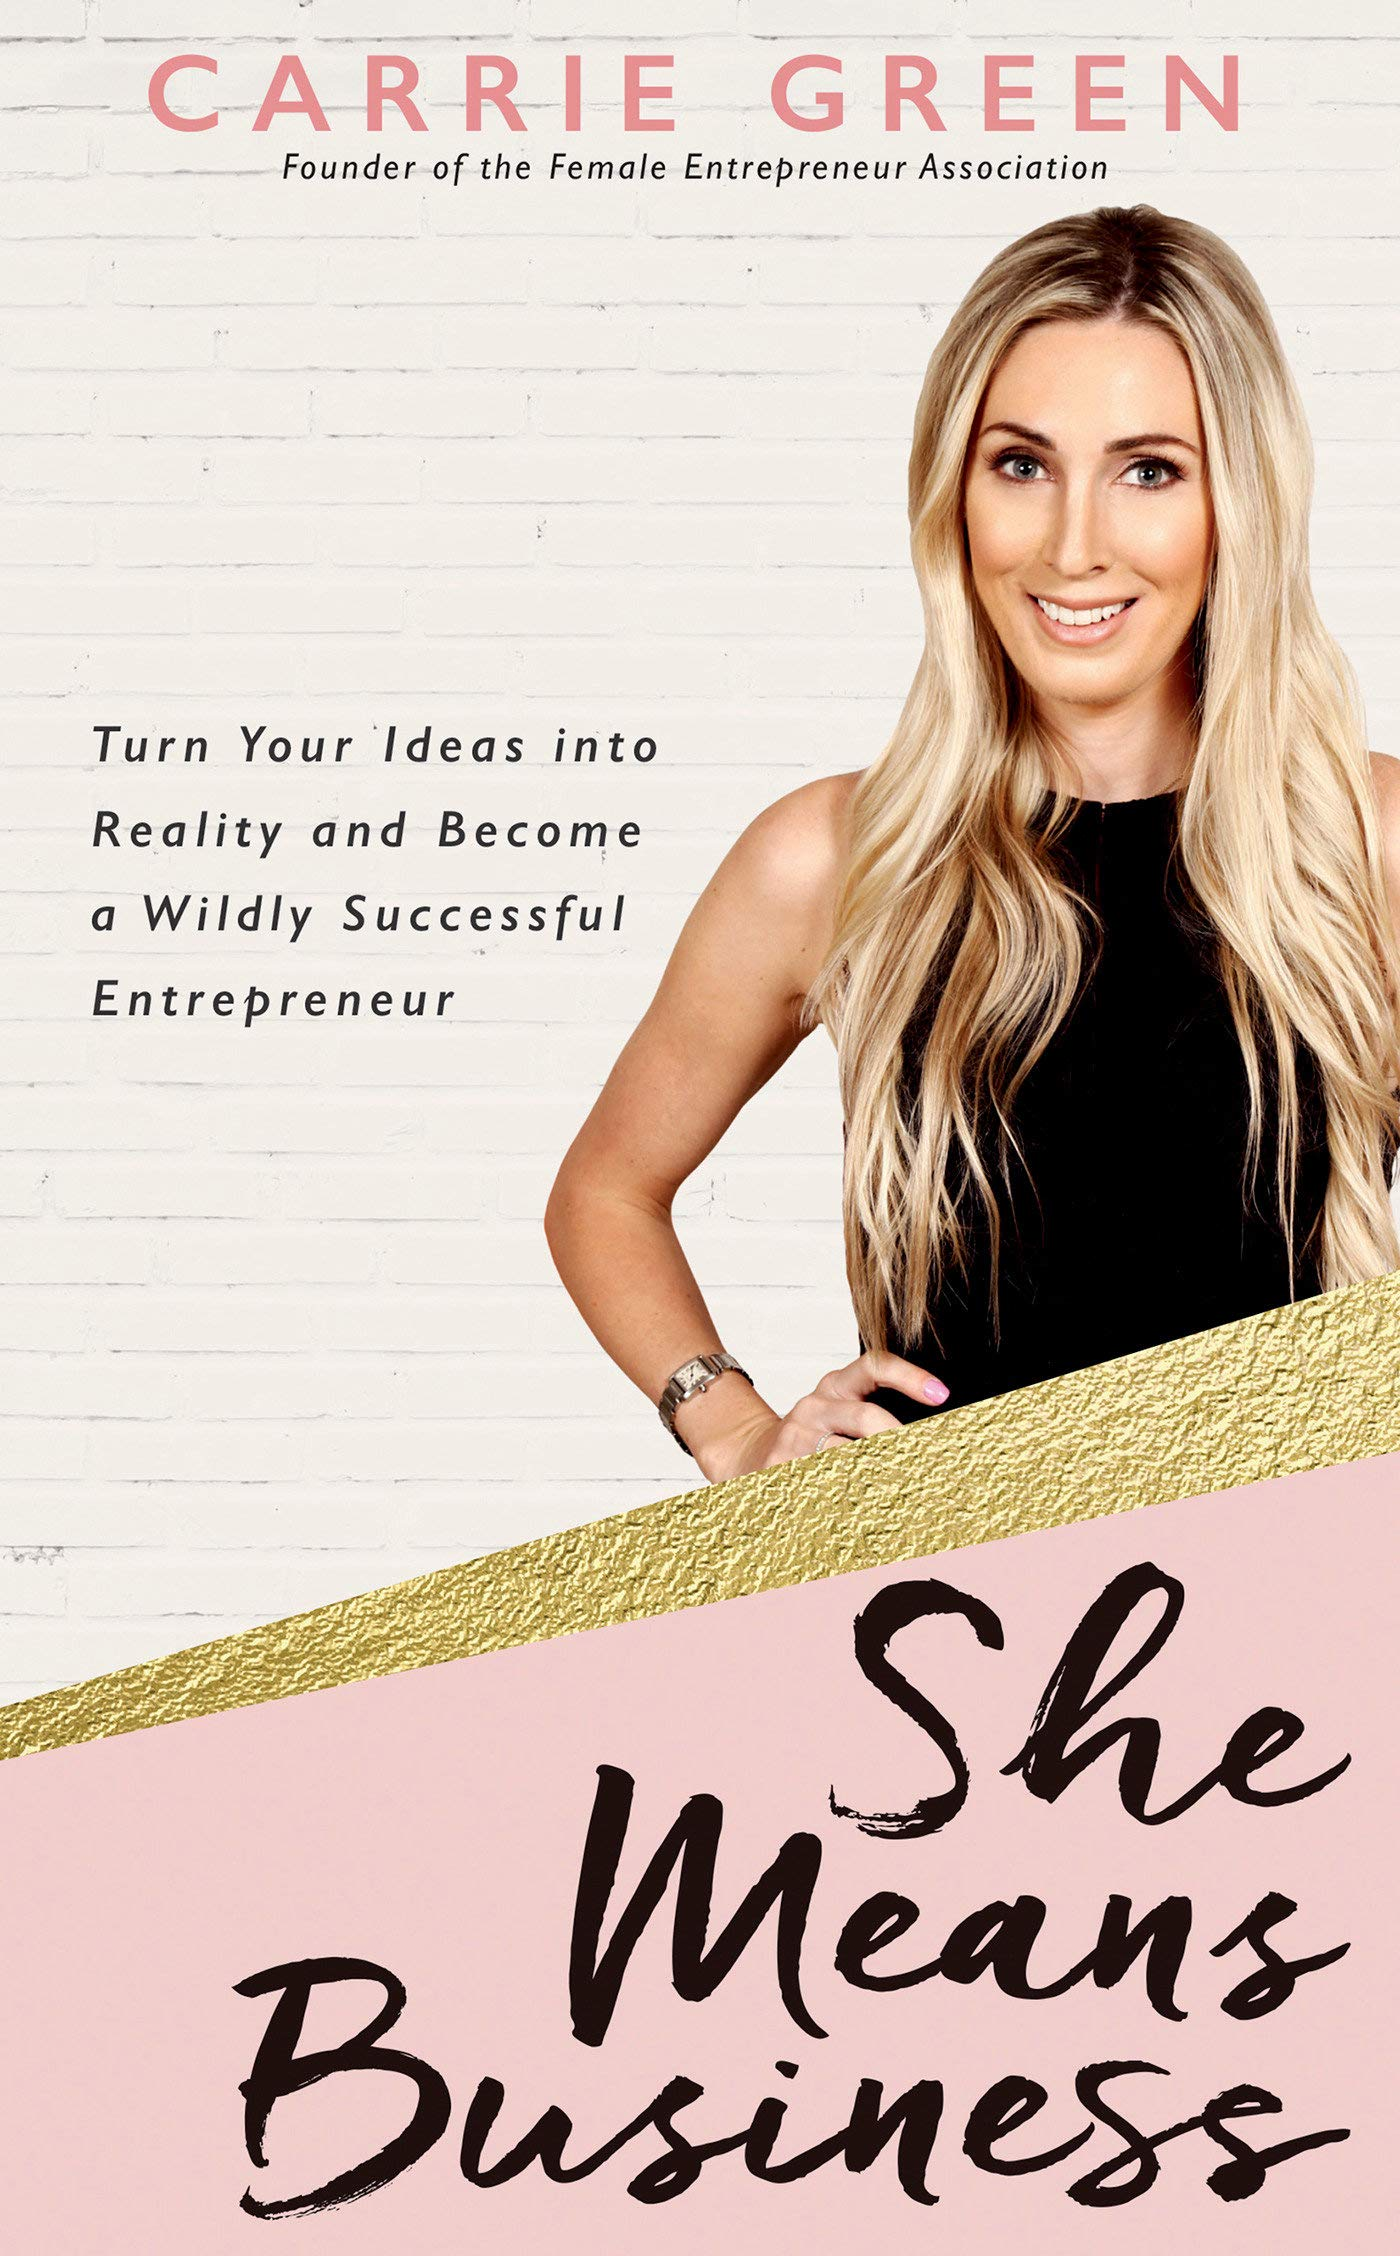 "She Means Business by Carrie Green - First on the hitlist is She Means Business by Carrie Green, Carries the founder of the Female Entrepreneur Association, an online platform helping women of all ages turn their fantastic ideas and dreams into ""wildly successful businesses"" This book is for all those entrepreneurs out there, those who already may have a business and those who one day hope to have one!"